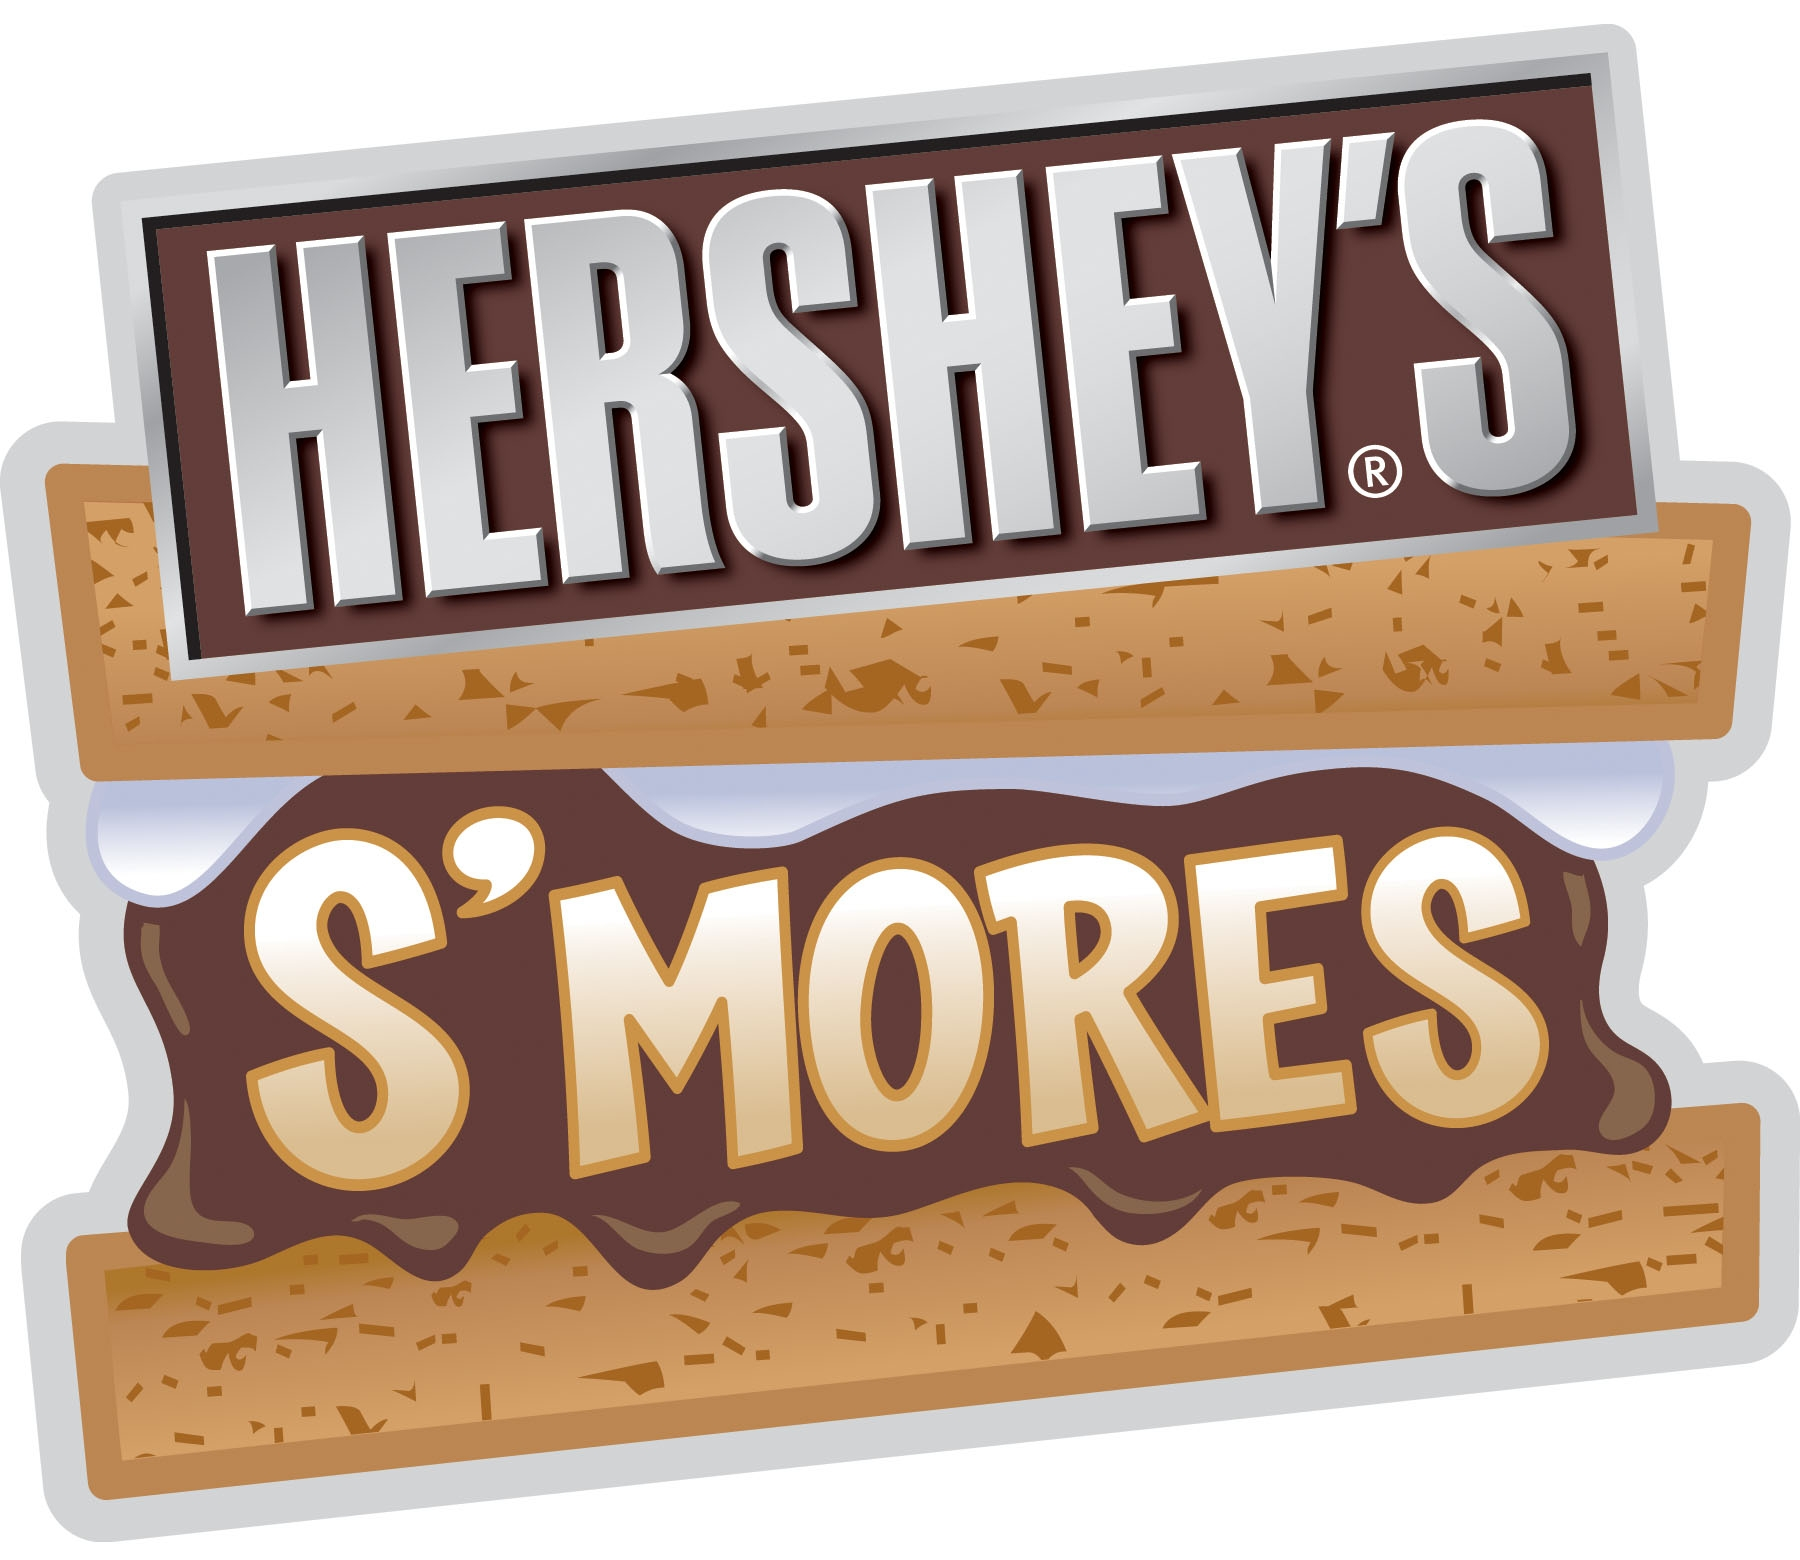 THE HERSHEY COMPANY CELEBRATES 80 YEARS OF S'MORES FUN